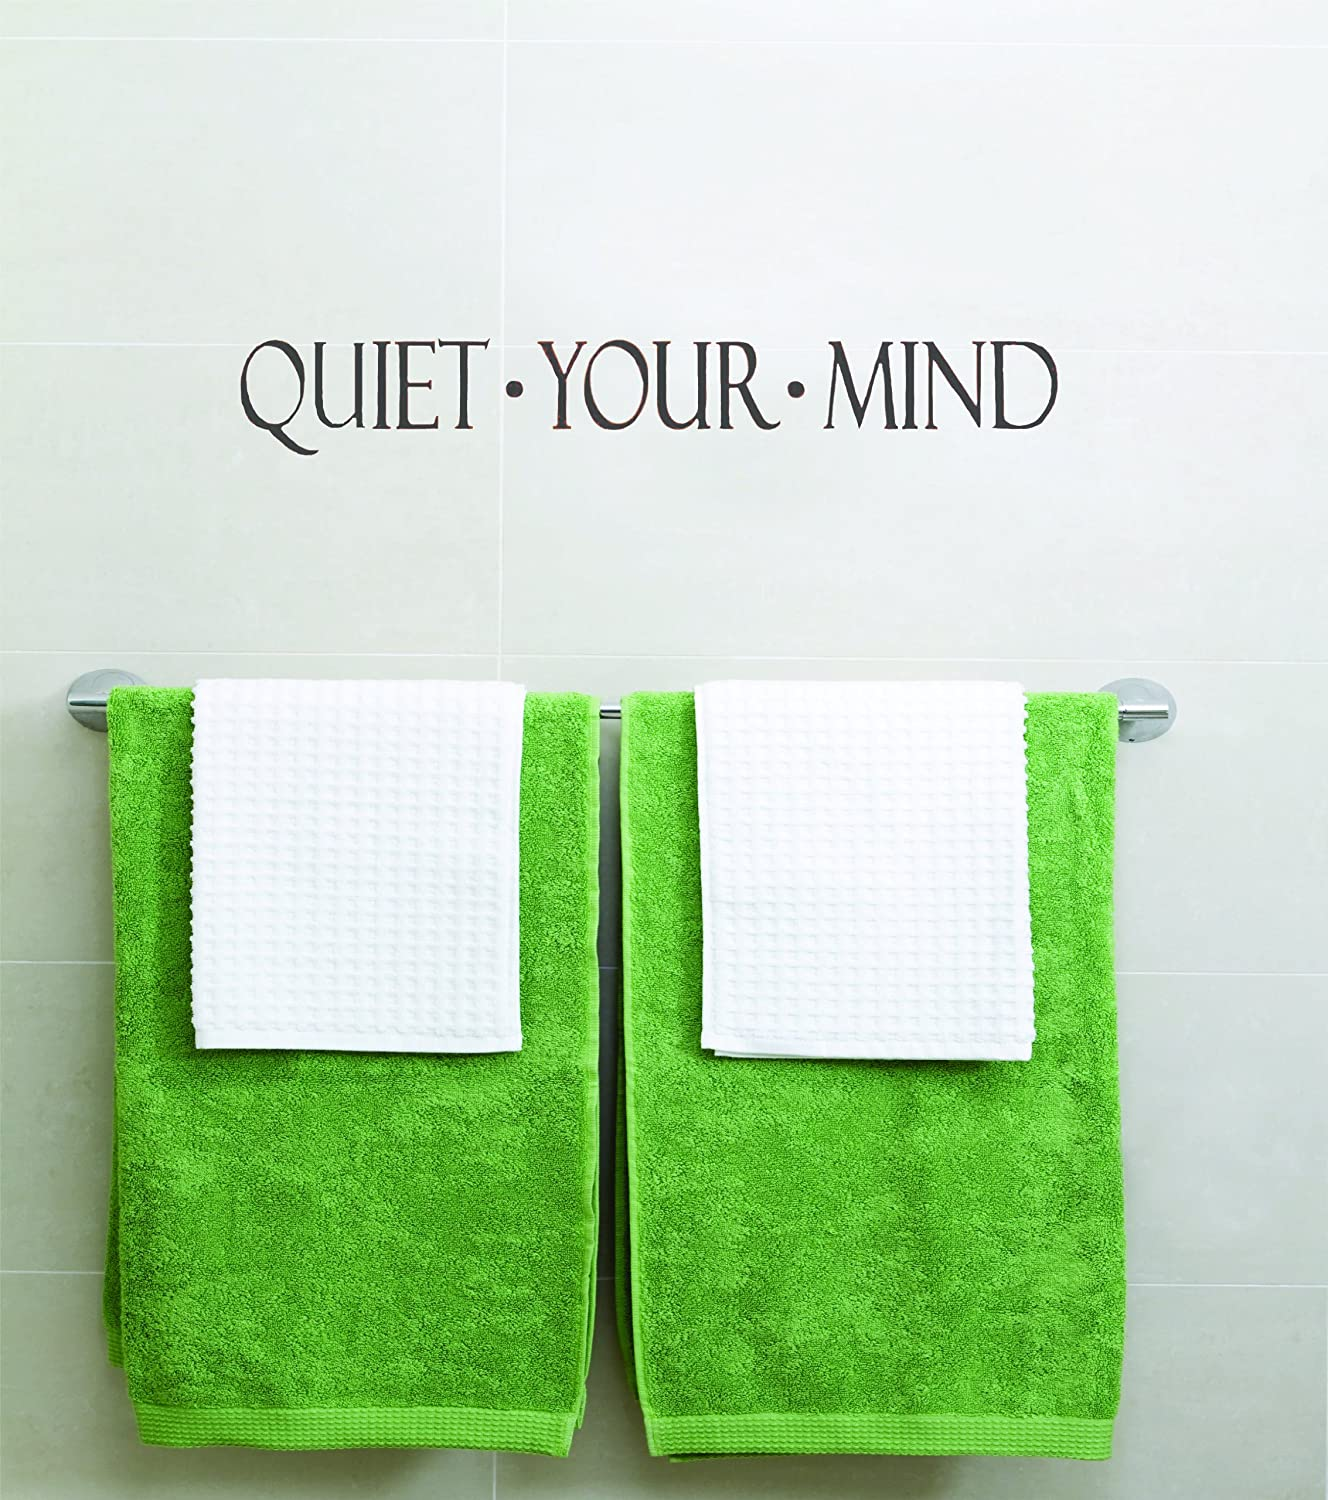 Design with Vinyl Quiet Your Mind Inspirational Life Quotes - Picture Art - Peel & Stick Vinyl Wall Decal Sticker Size : 6x30 Color : Black Black by Design with Vinyl B00H1YNOXS